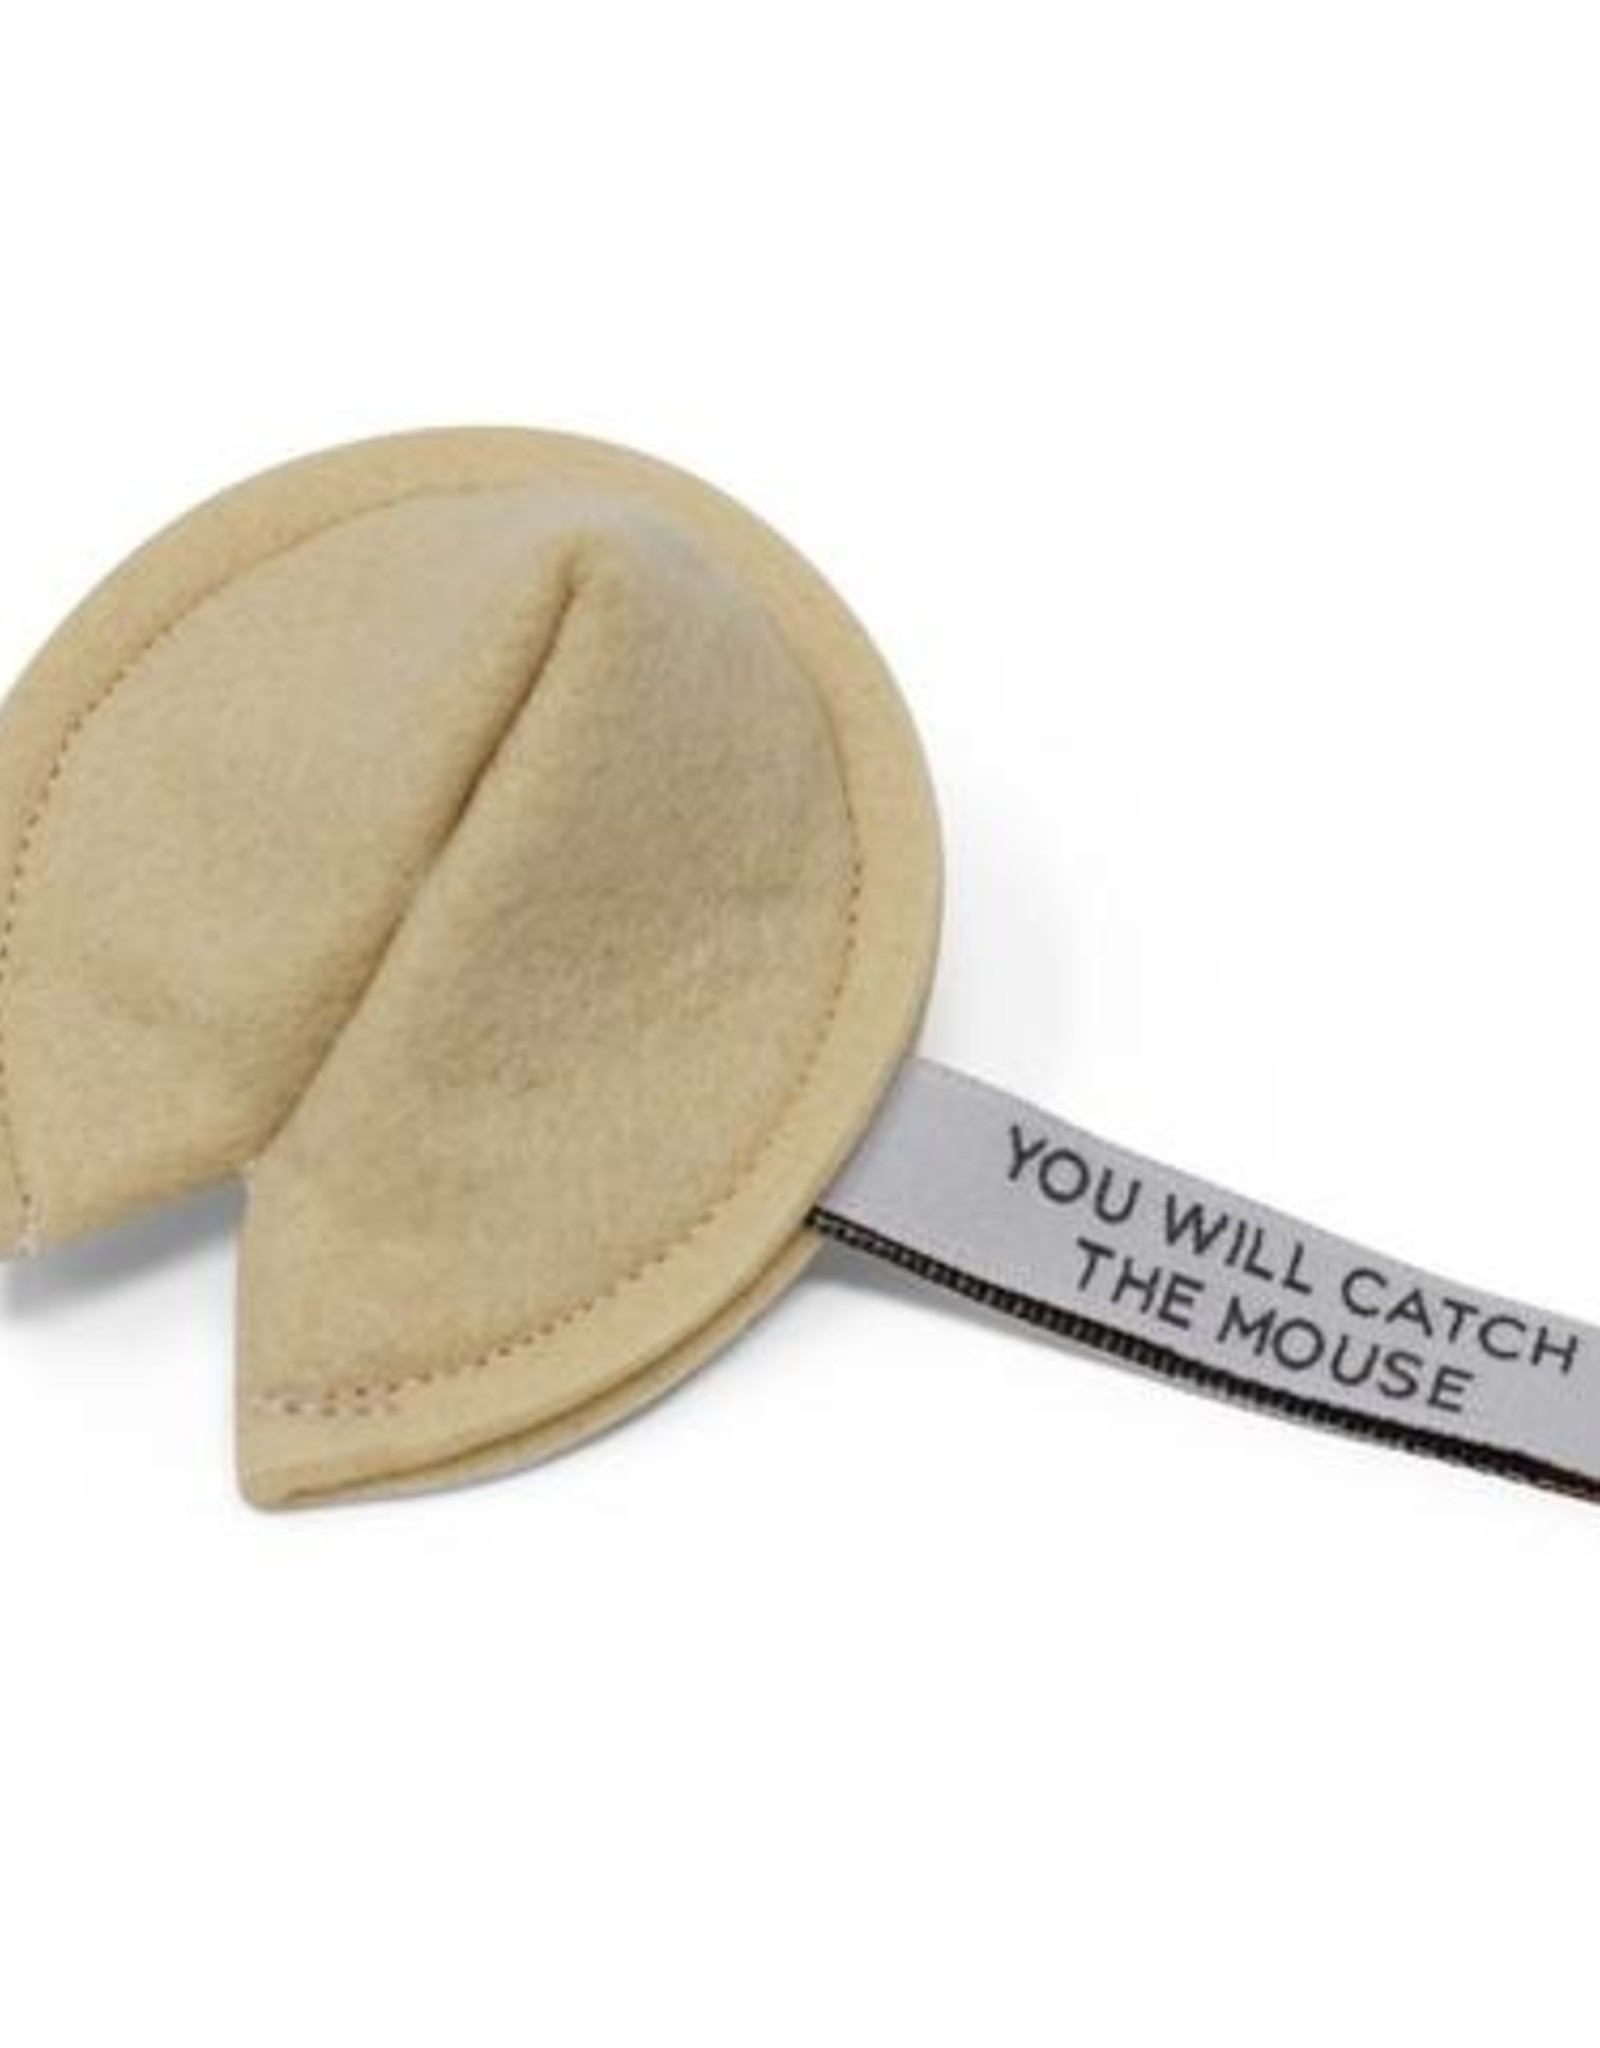 Modern Beast Catnip Fortune Cookie, You Will Catch the Mouse